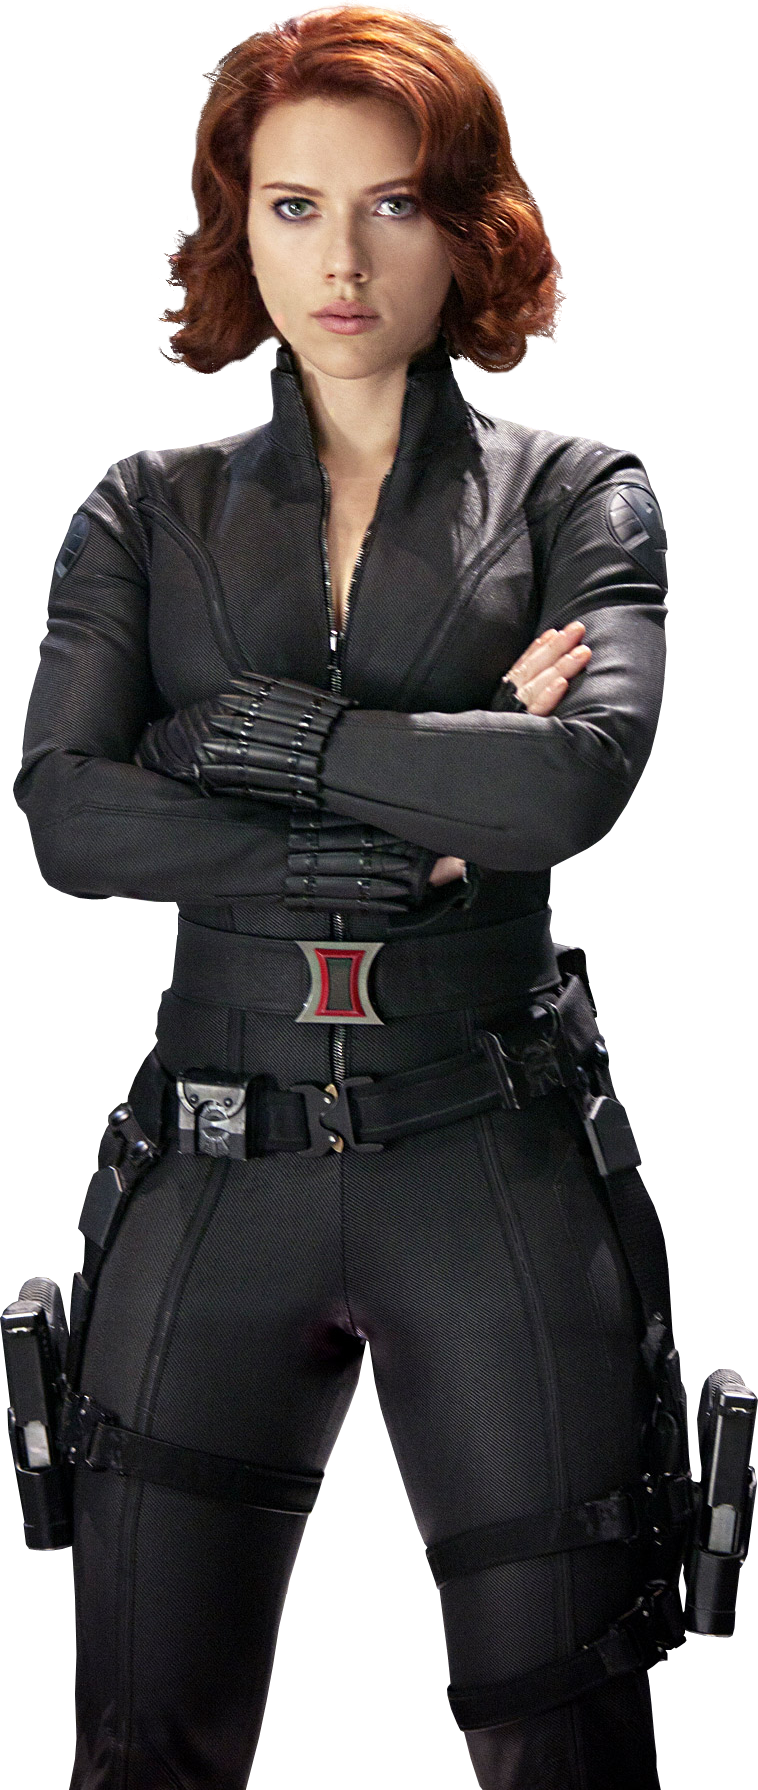 Black Widow Image PNG Image